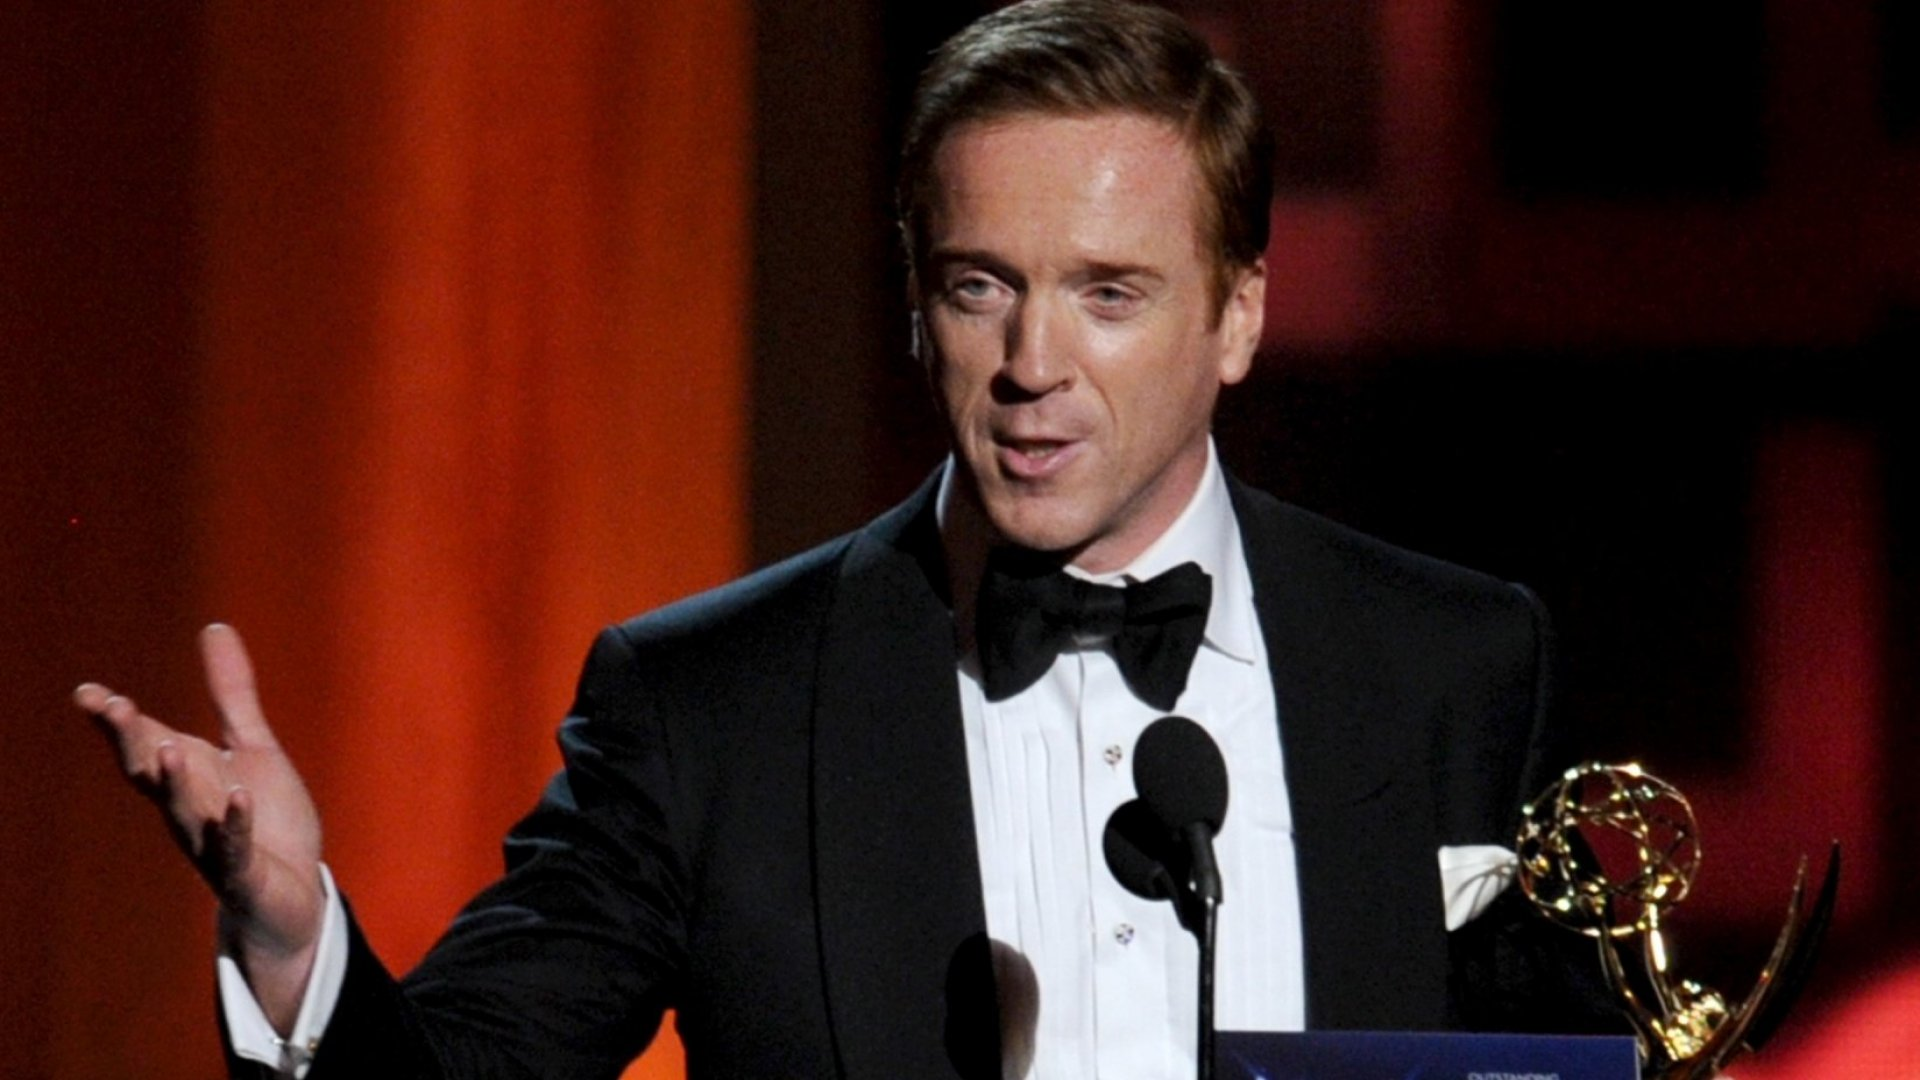 Homeland actor Damien Lewis receiving an Emmy for his portrayal of a spy under investigation by the CIA.